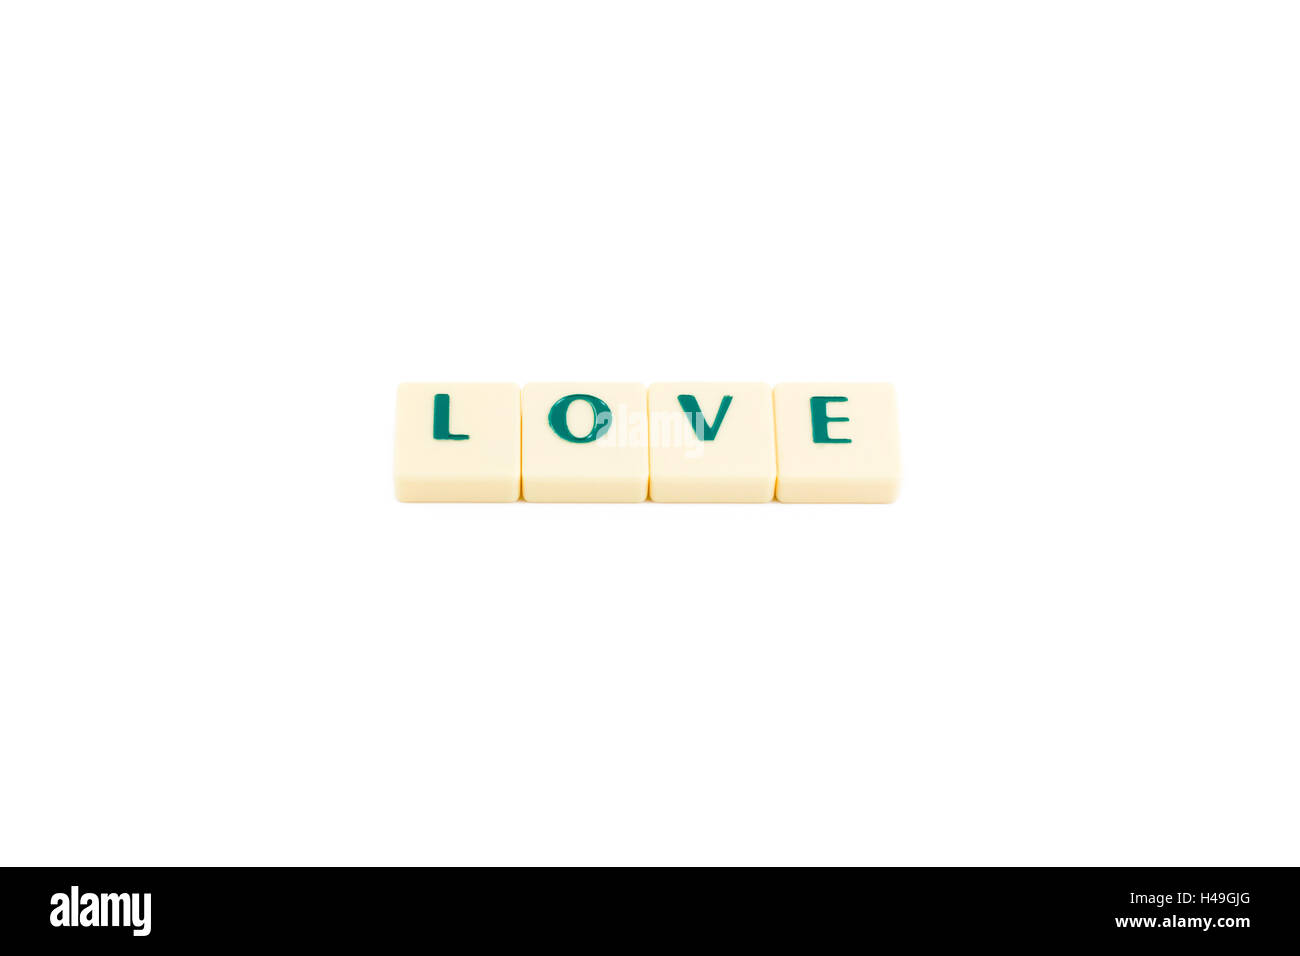 Word love on white background - Stock Image